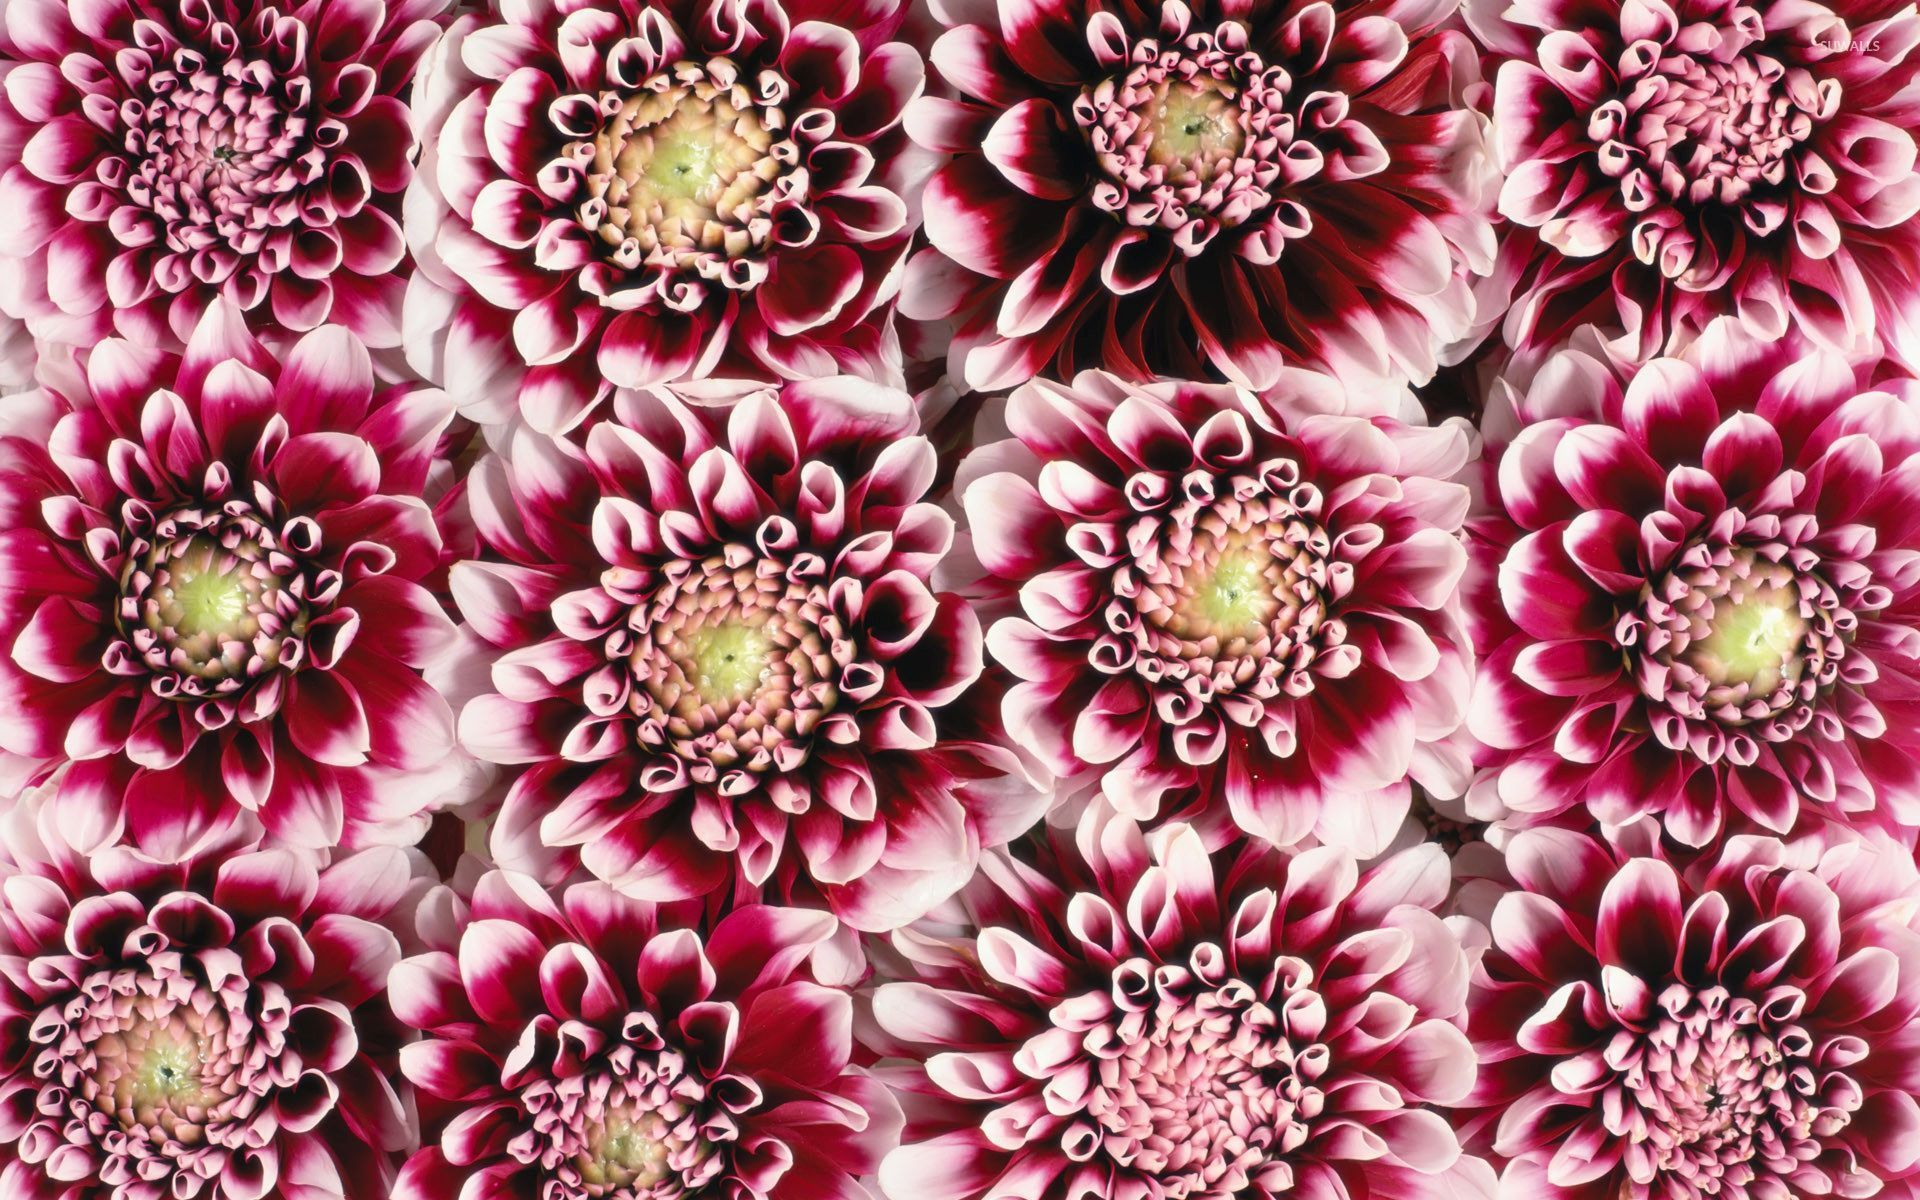 Red And Pink Dahlias Wallpaper Flower Wallpapers 54200 HD Wallpapers Download Free Images Wallpaper [1000image.com]